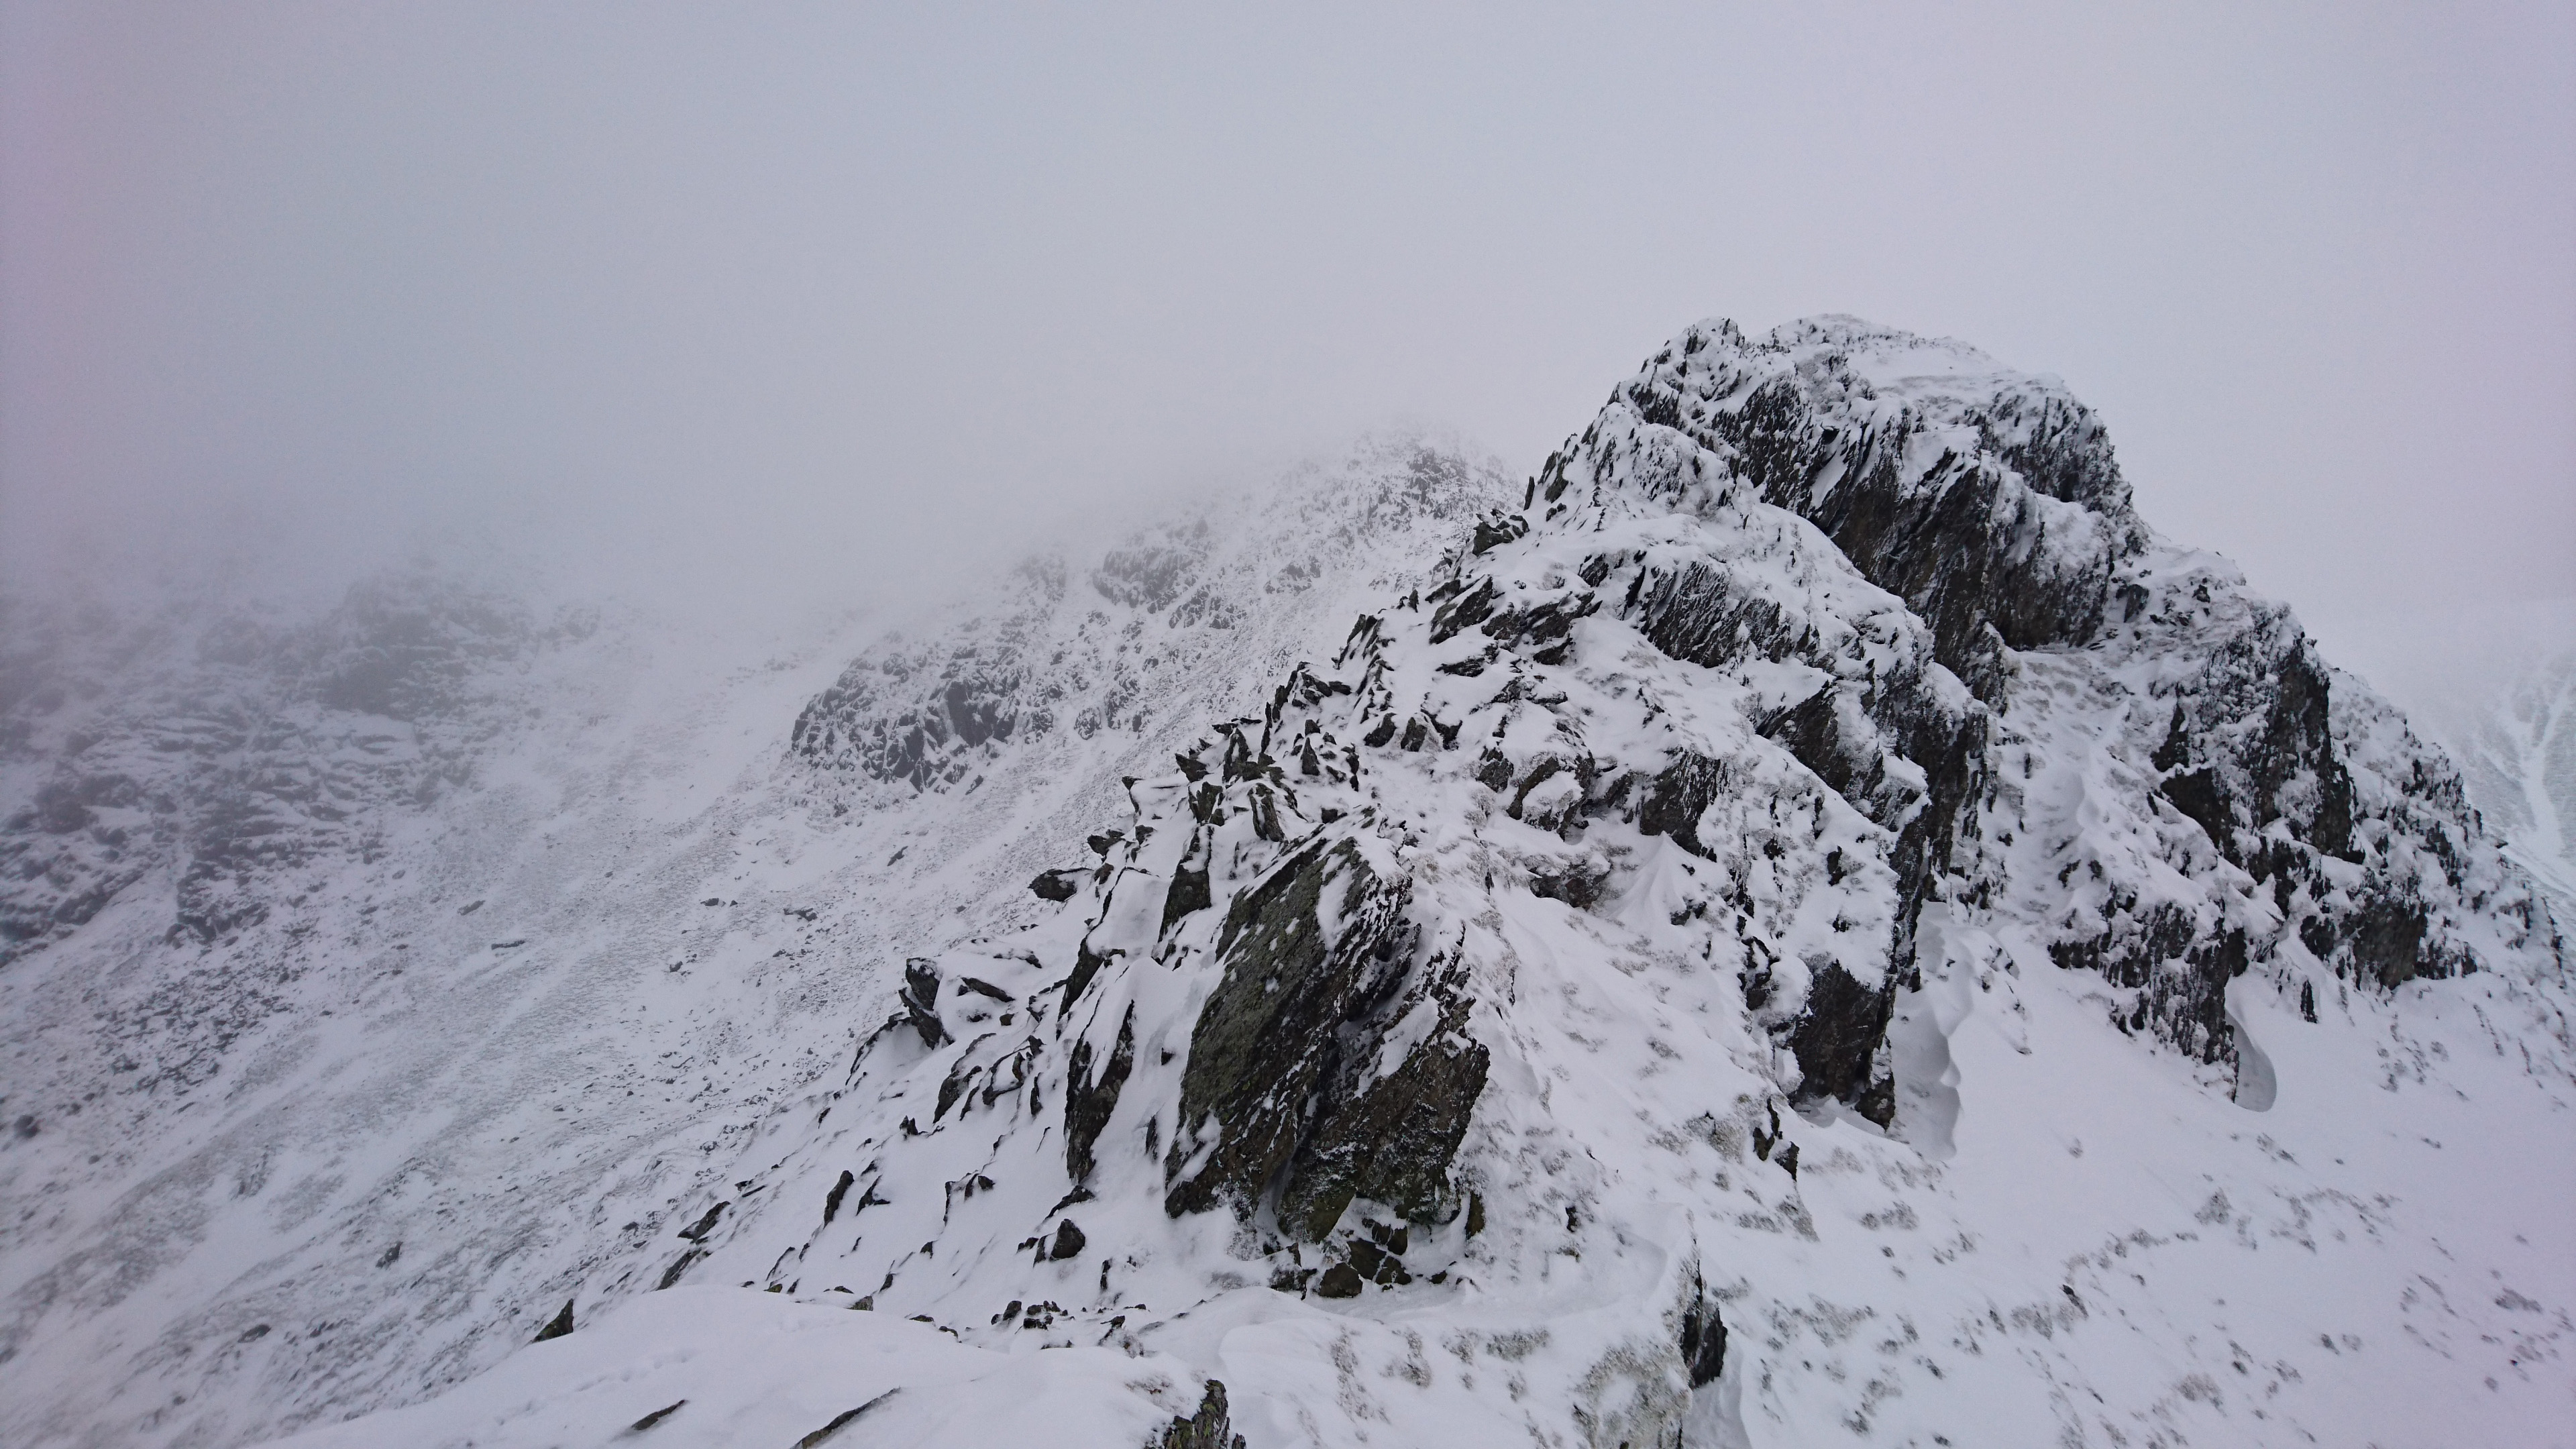 Looking back up Swirral Edge